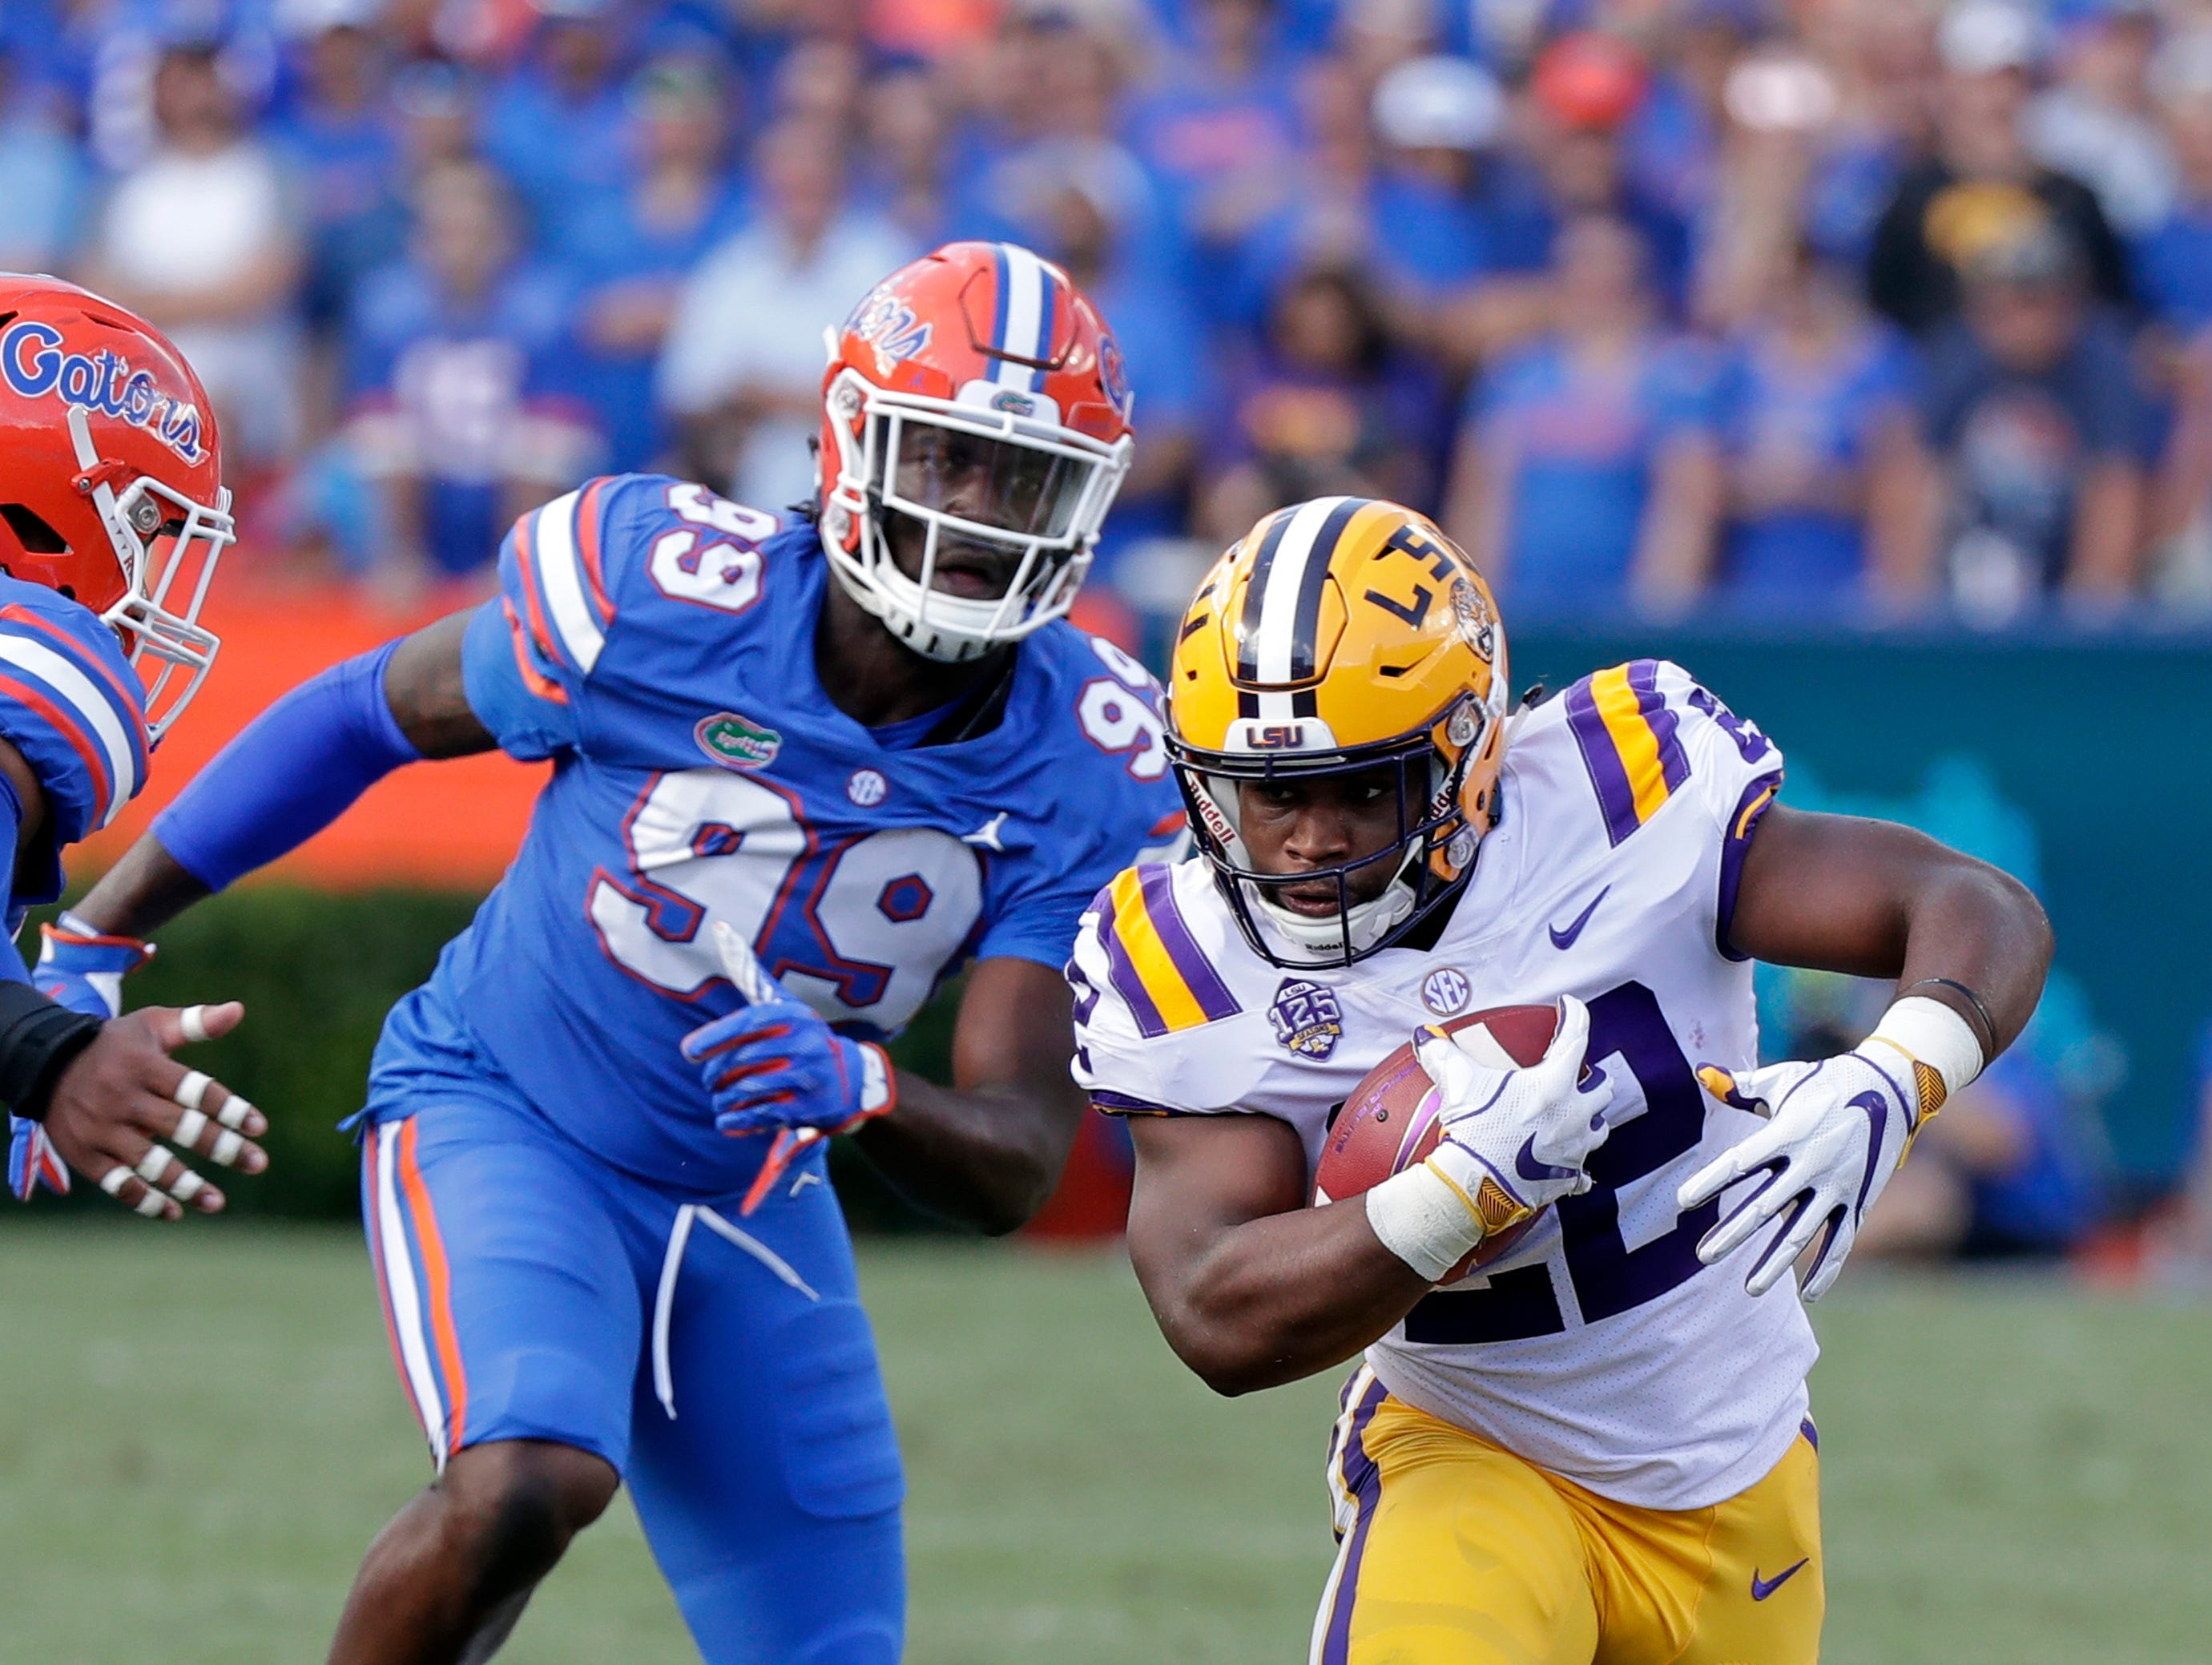 LSU running back Clyde Edwards-Helaire, right, runs past Florida defensive lineman Jachai Polite (99) during the first half of an NCAA college football game, Saturday, Oct. 6, 2018, in Gainesville, Fla.